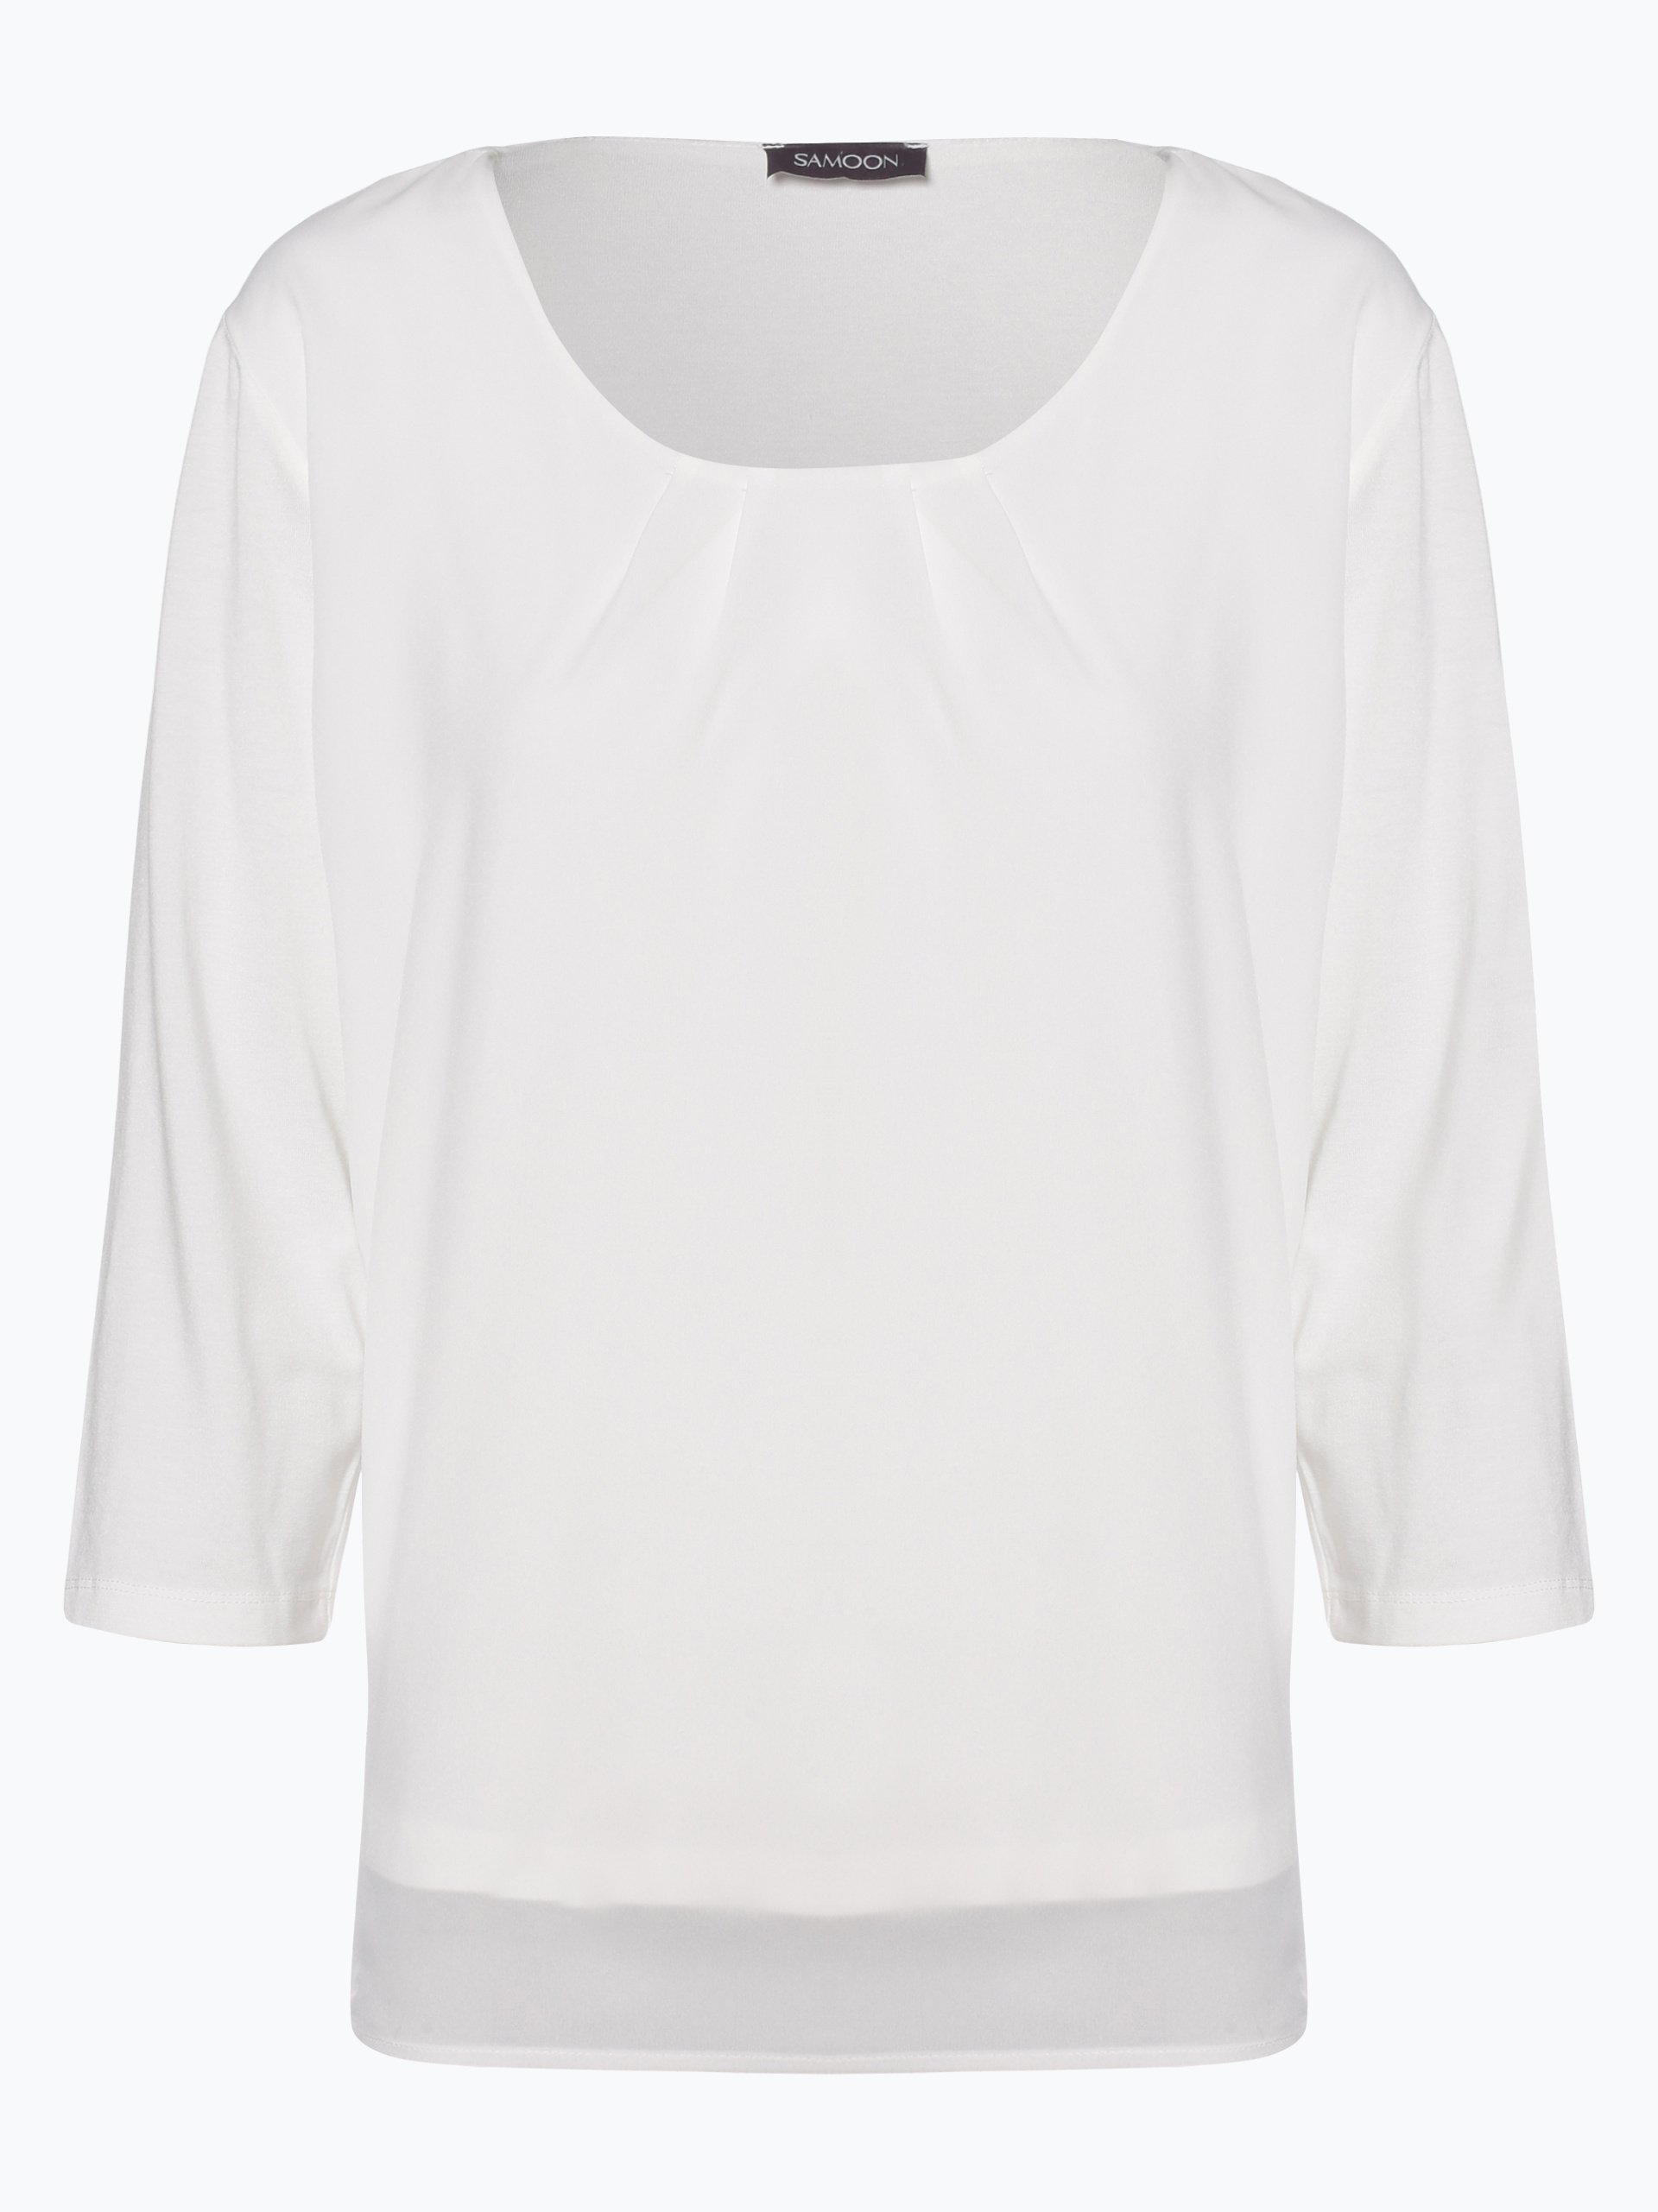 Samoon Damen Shirt